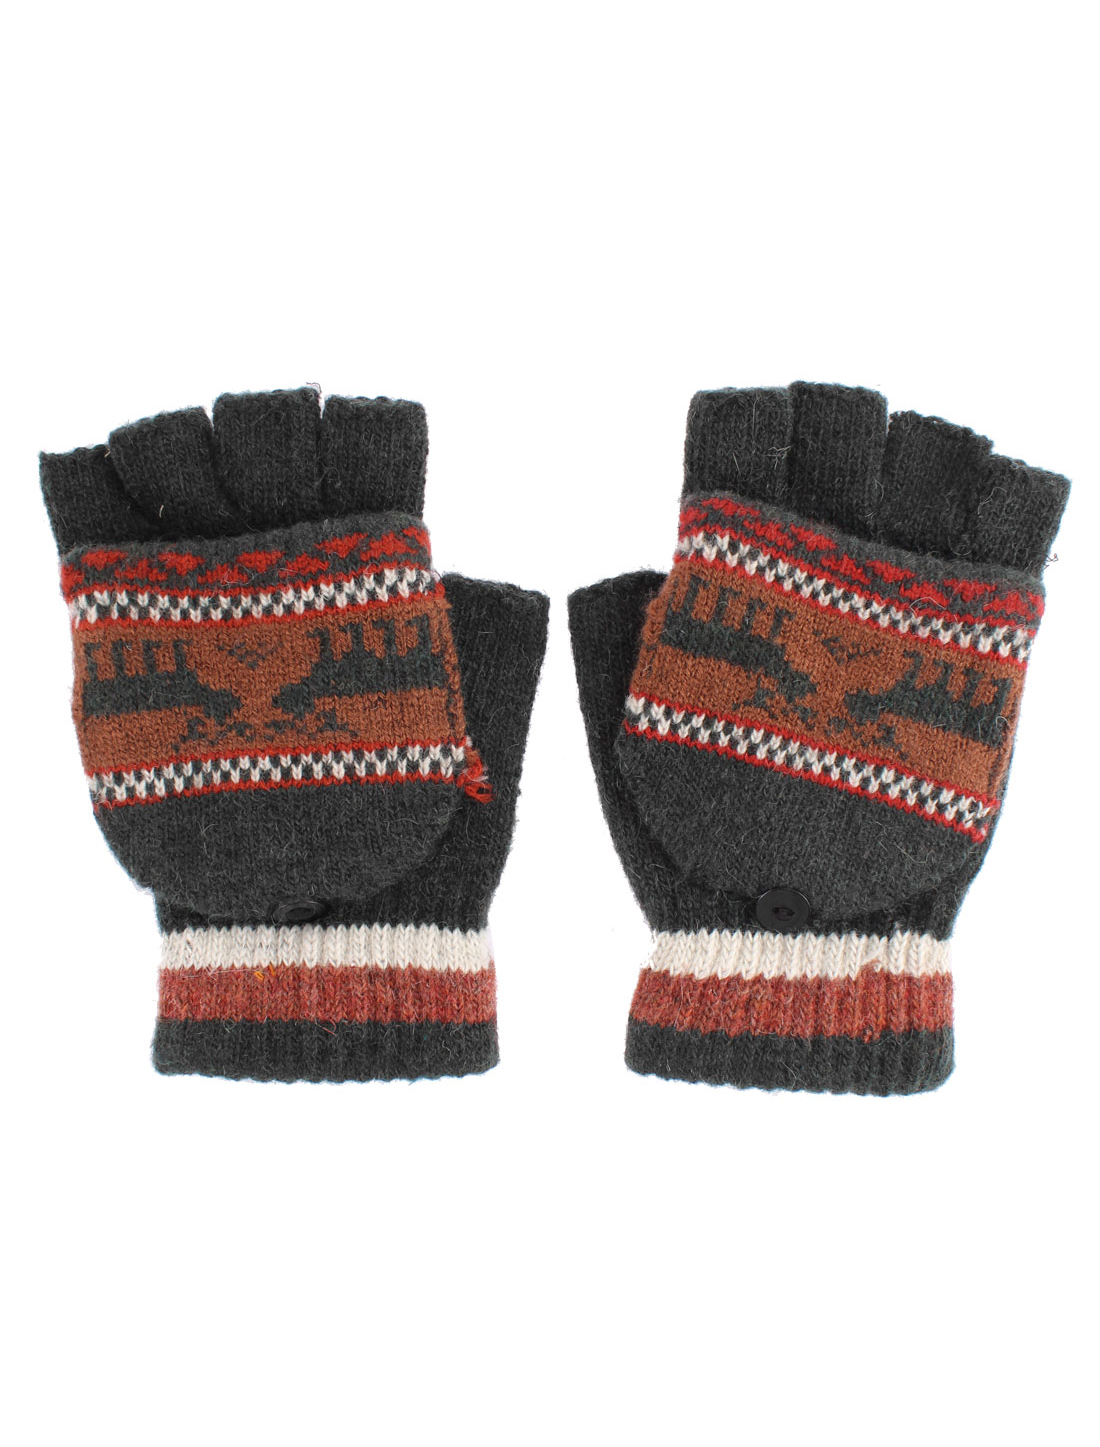 Unisex Deer Pattern Flip Convertible Half-finger Knitted Gloves Green Pair